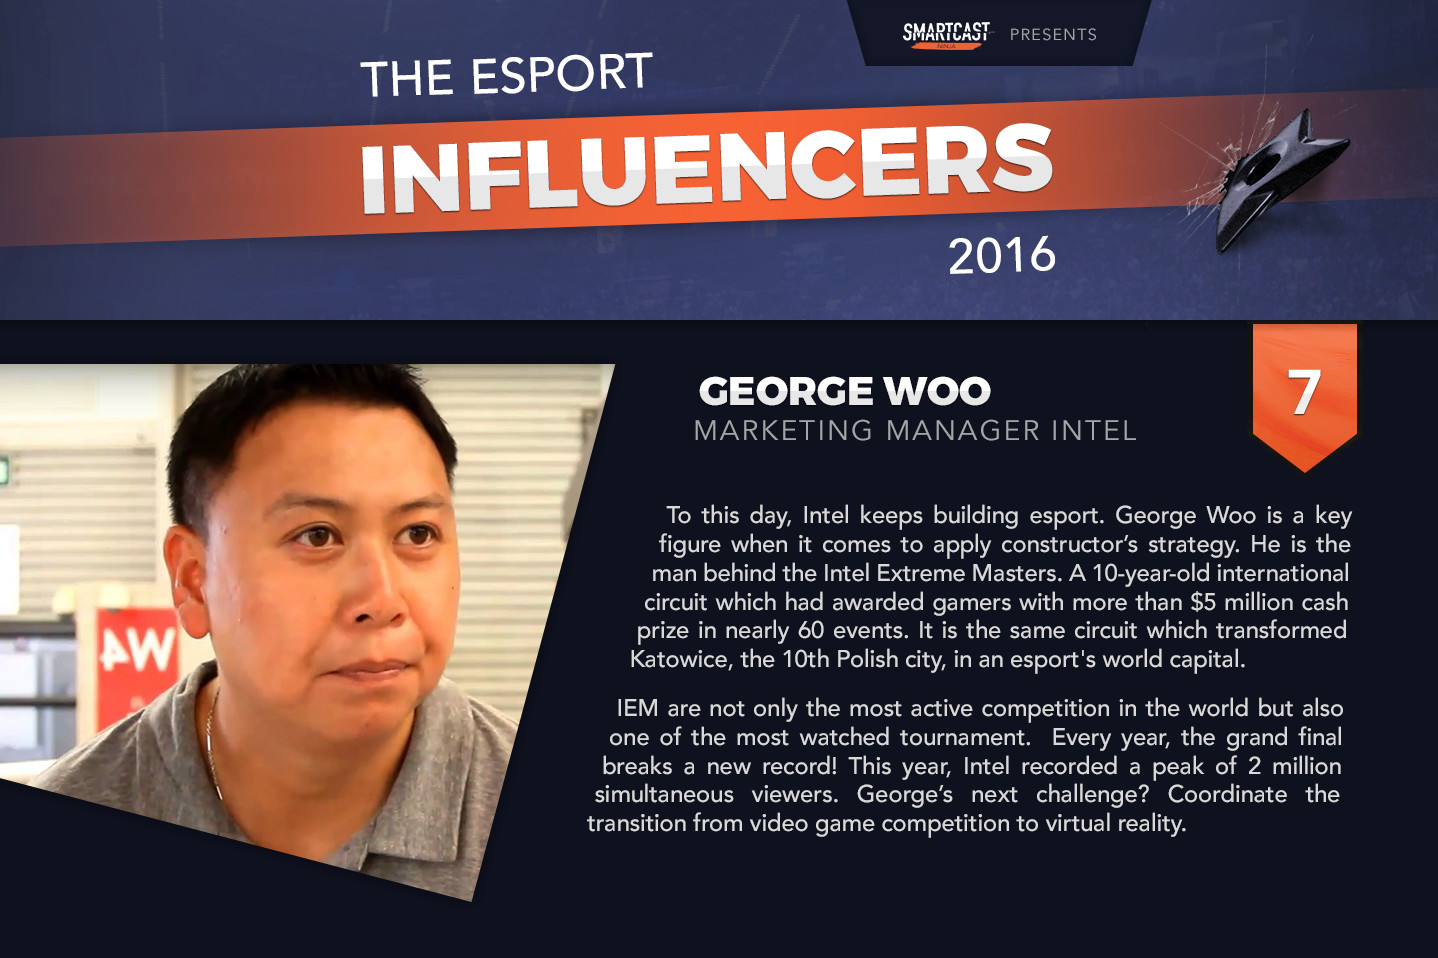 Smartcast-influencer-esport-thumbnail-7-george_woo-eng